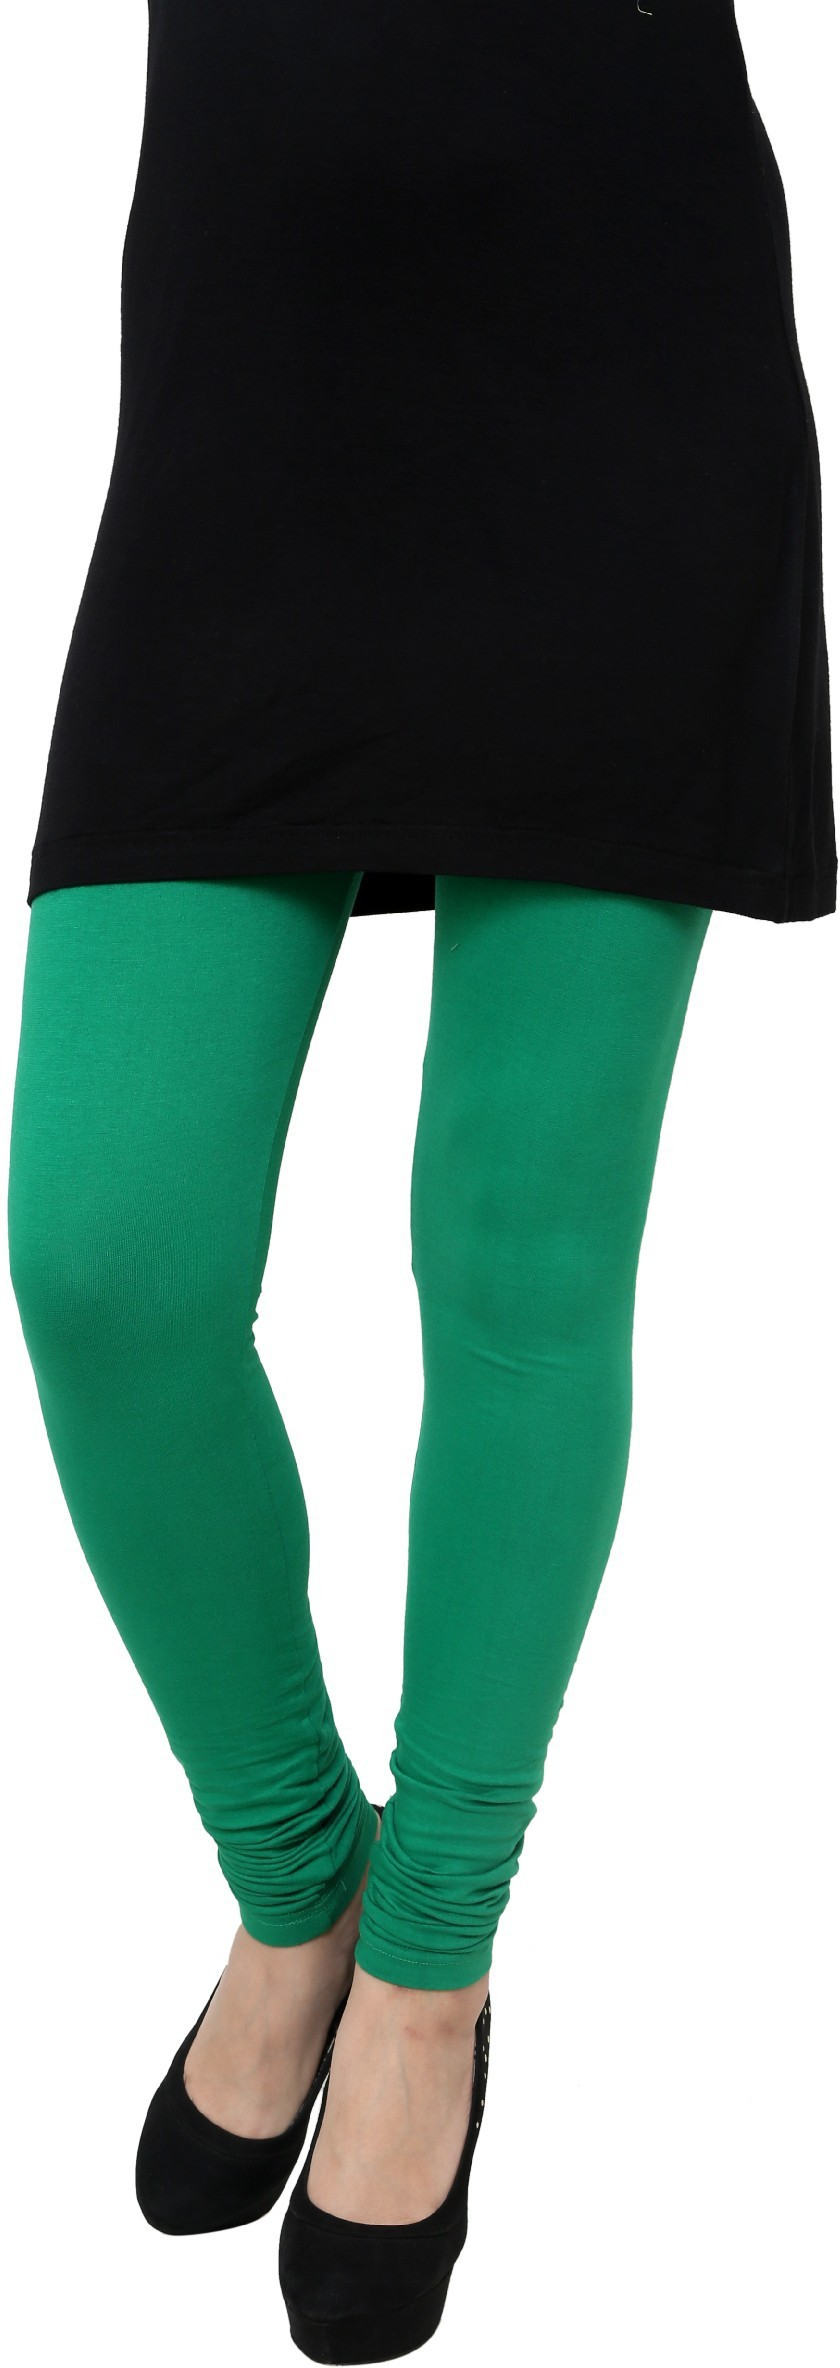 Gen Womens Green Leggings